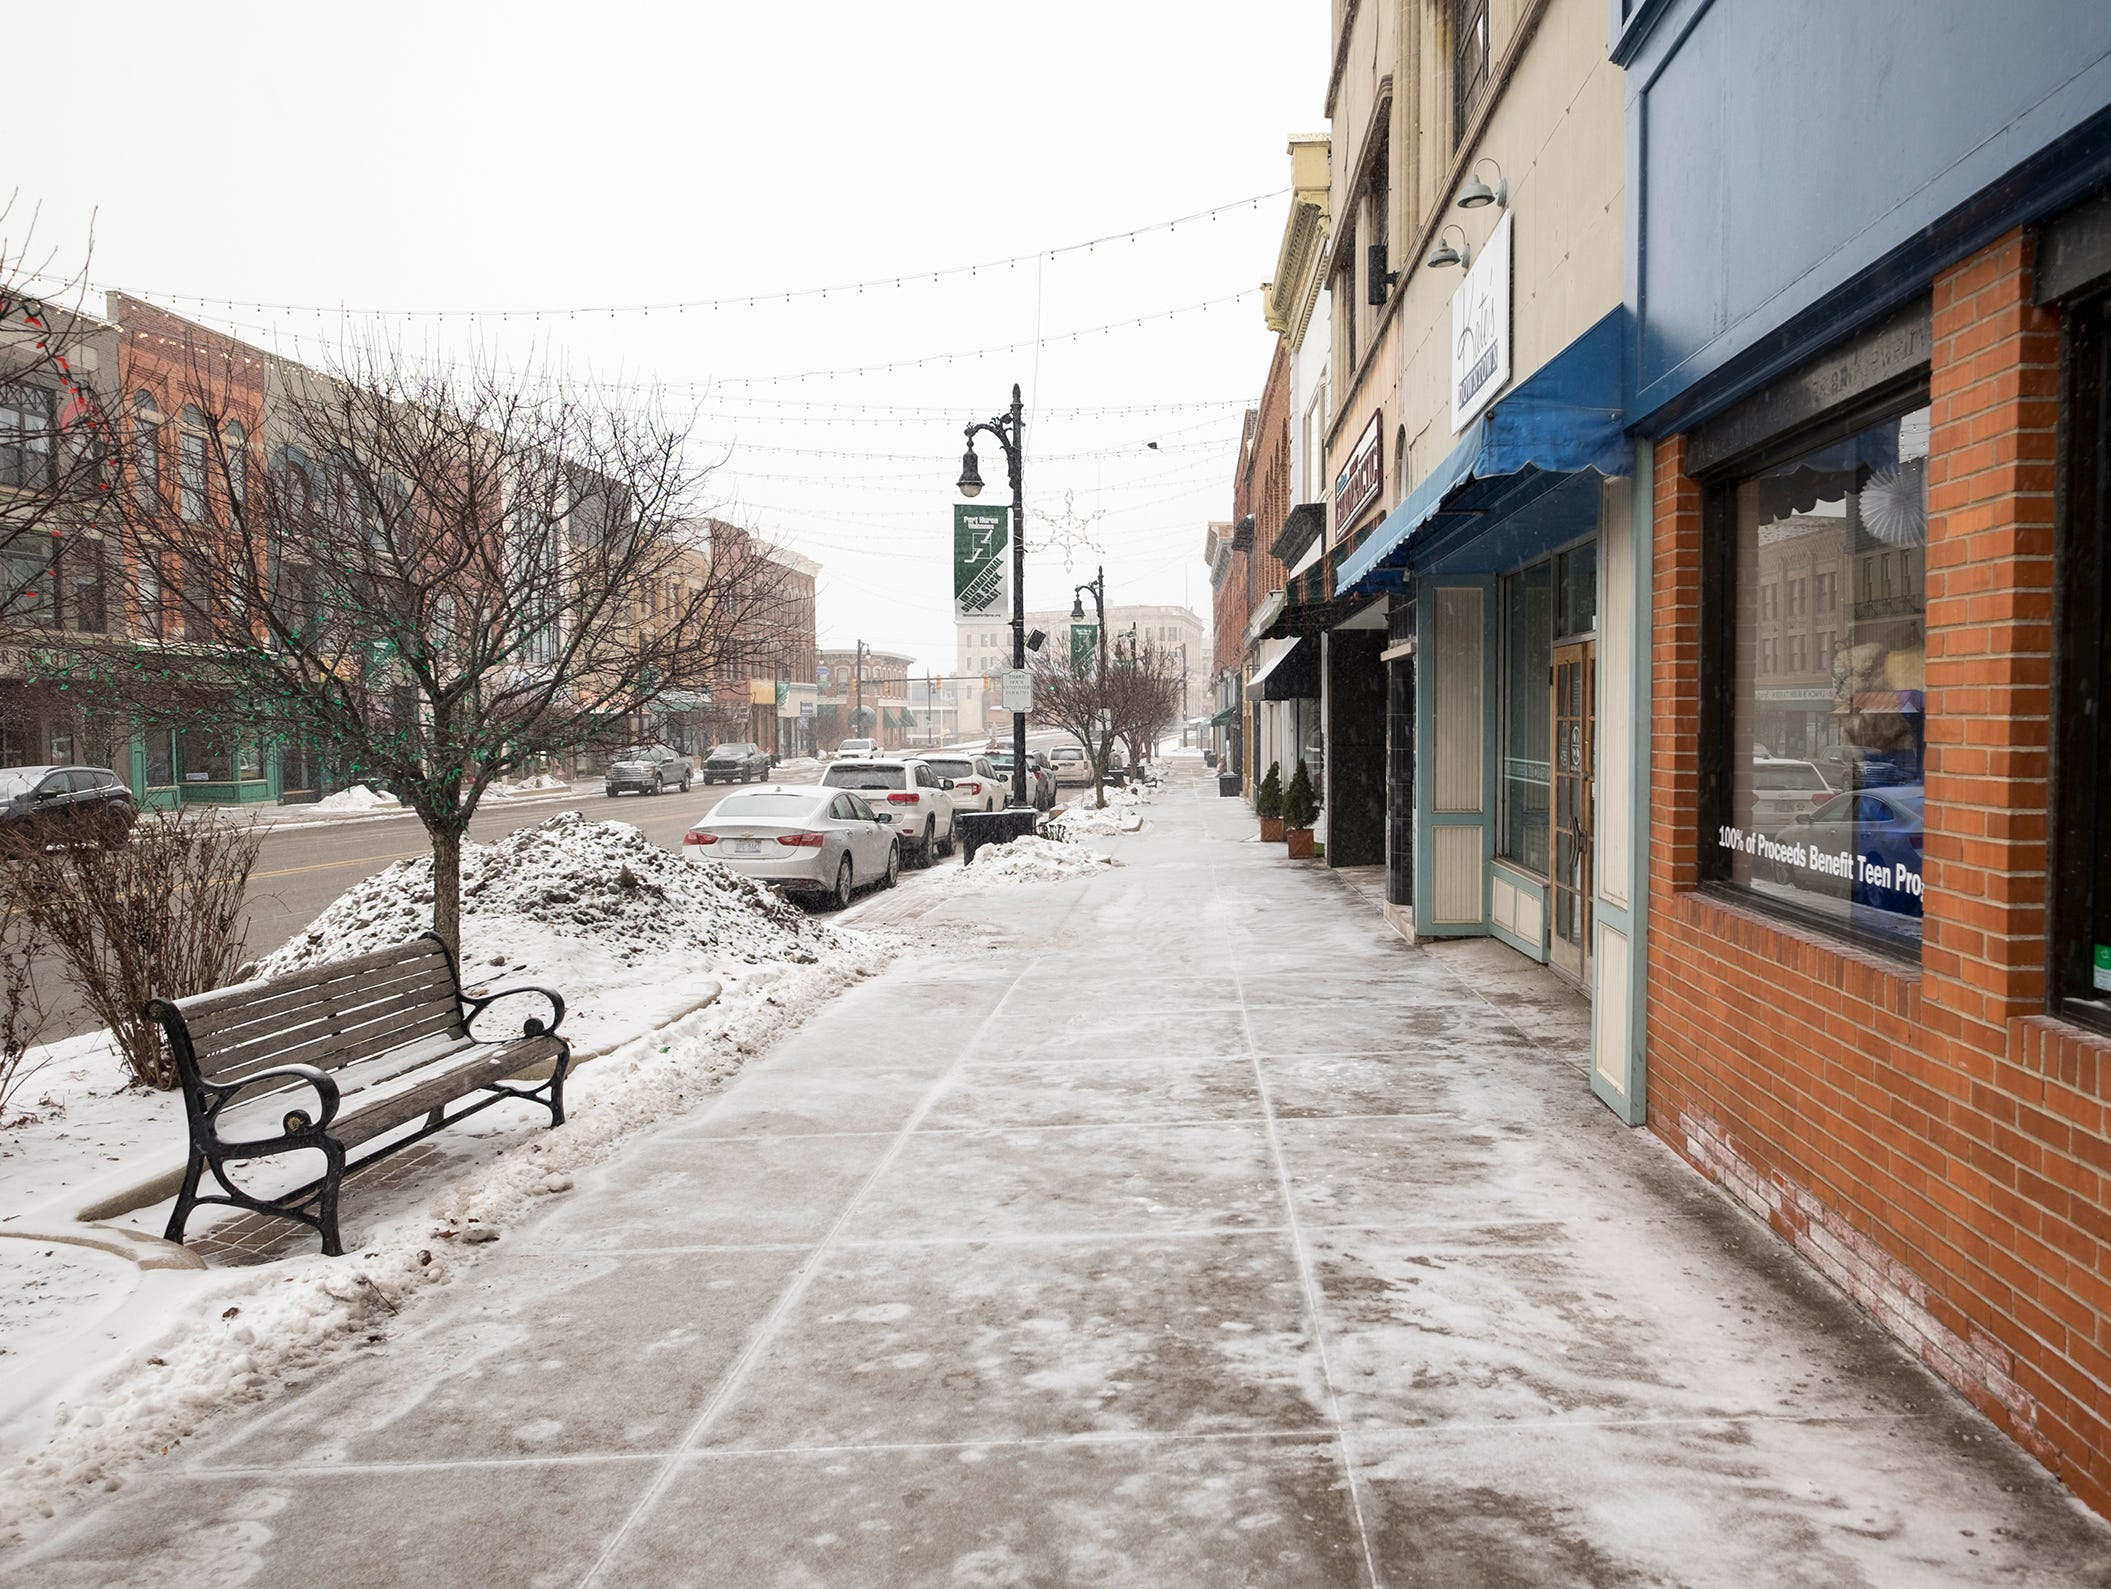 Snow falls in downtown Port Huron Monday, Jan. 28, 2019. As of noon Monday, the National Weather Service predicted a total snow accumulation of 7 to 9 inches over the northern side of St. Clair County, with 4 to 6 inches predicted for south of I-69.